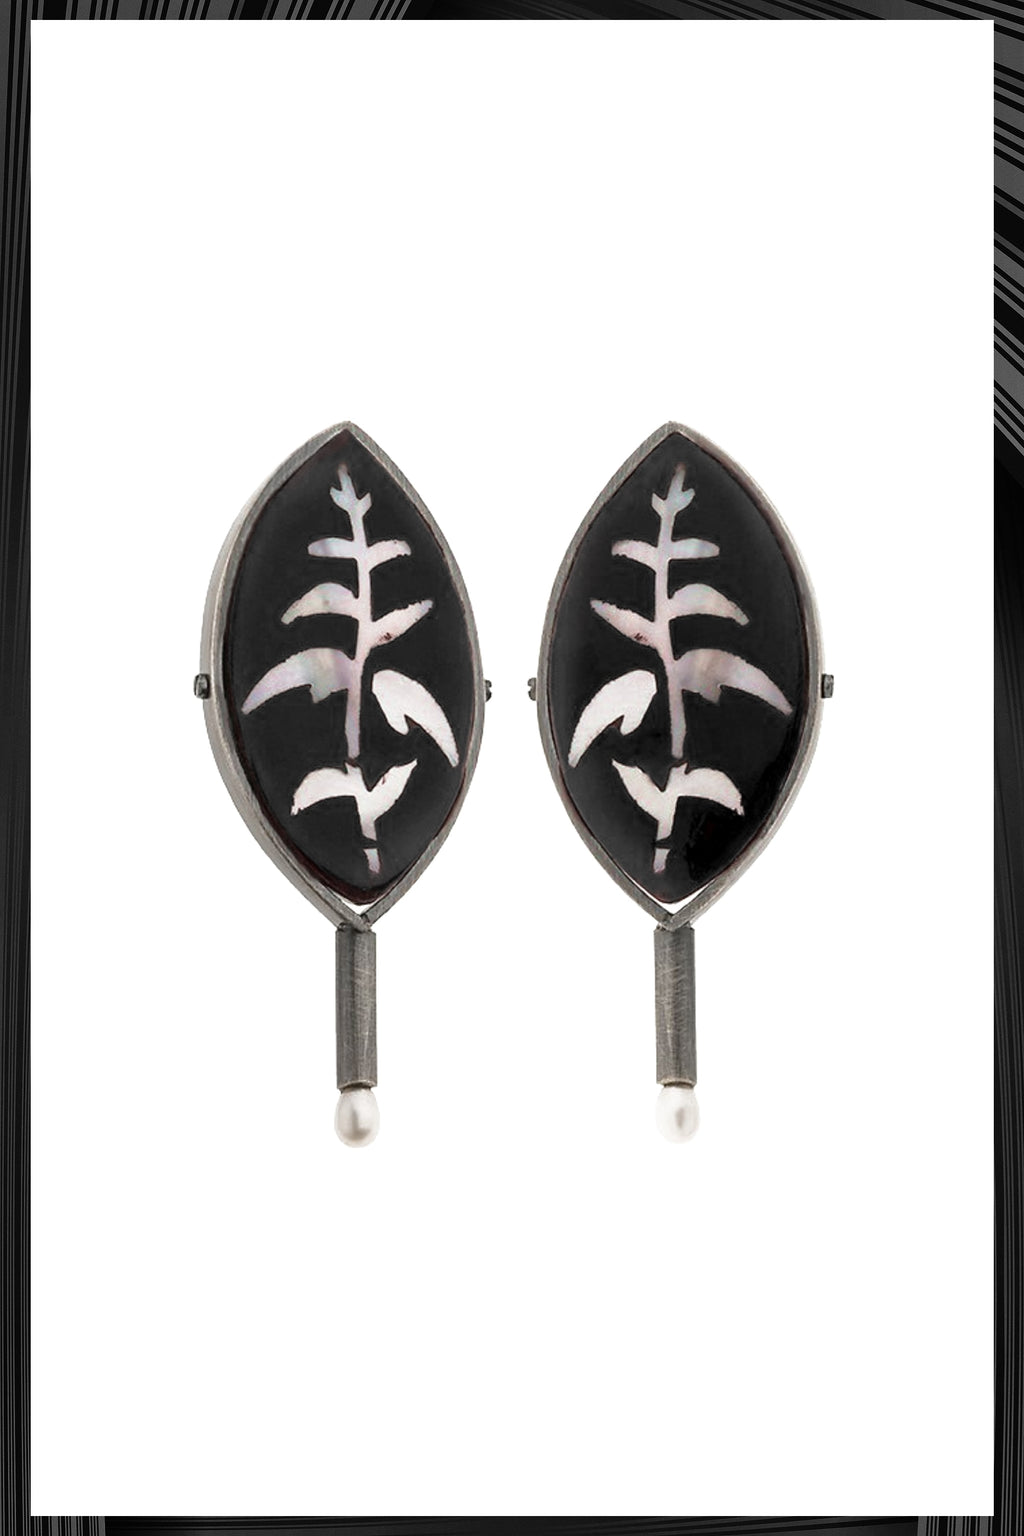 Vietnam Earrings | Free Delivery - Quick Shipping